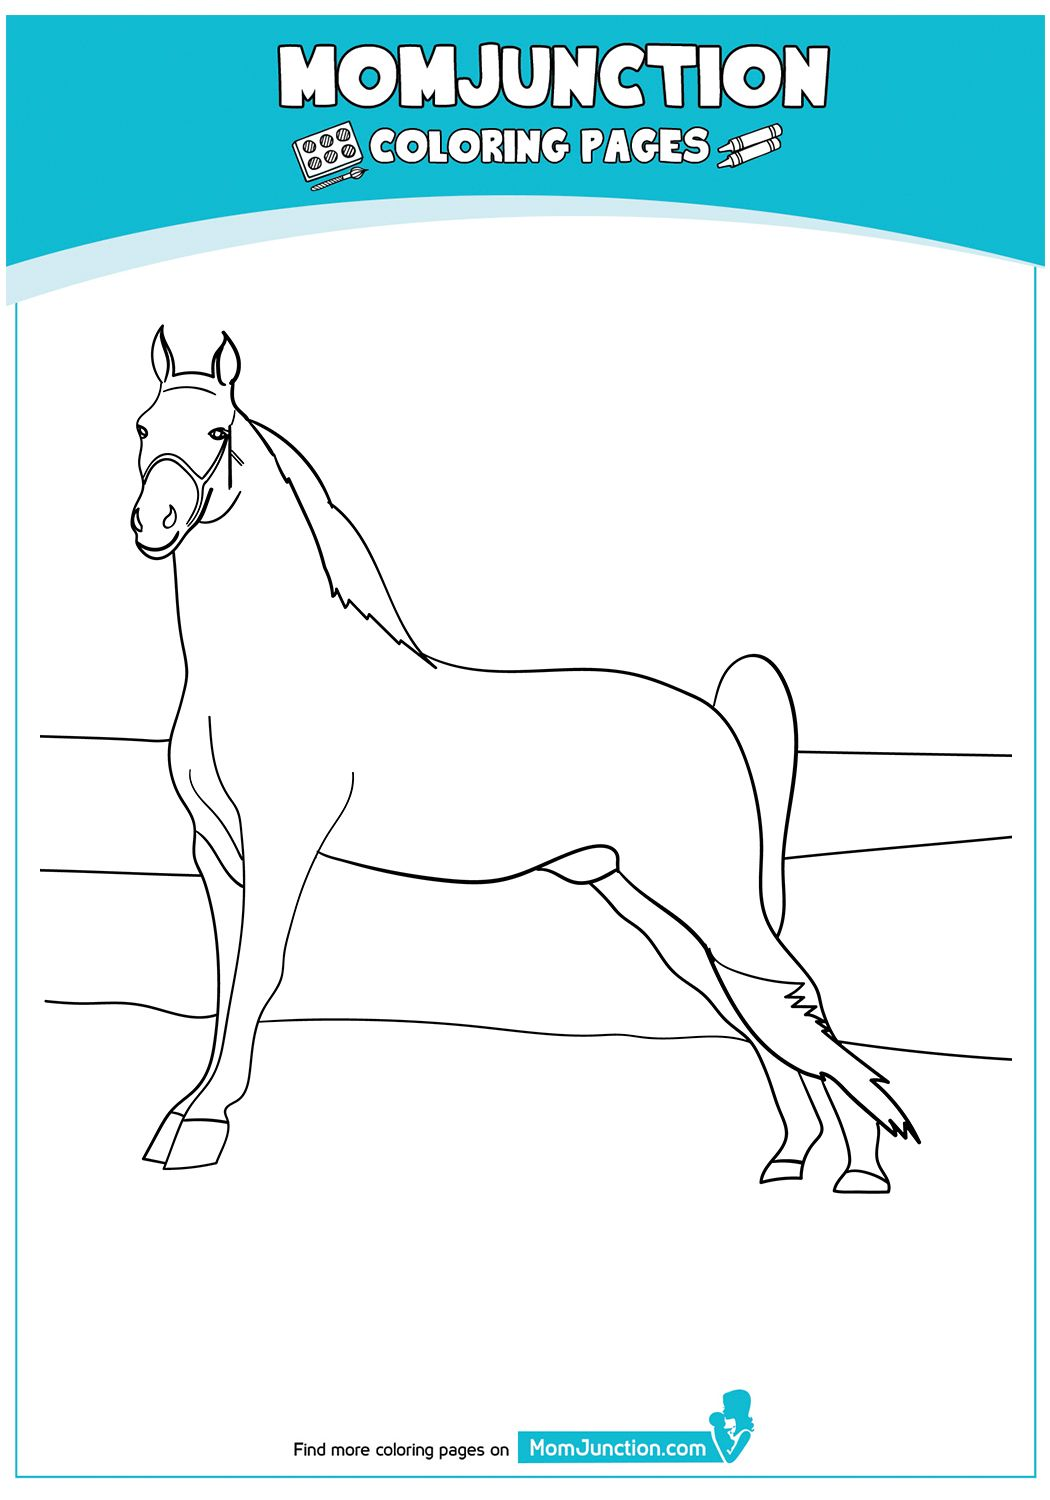 Tennessee Walking Horses 17 Horse Coloring Pages Coloring Books Coloring Pages